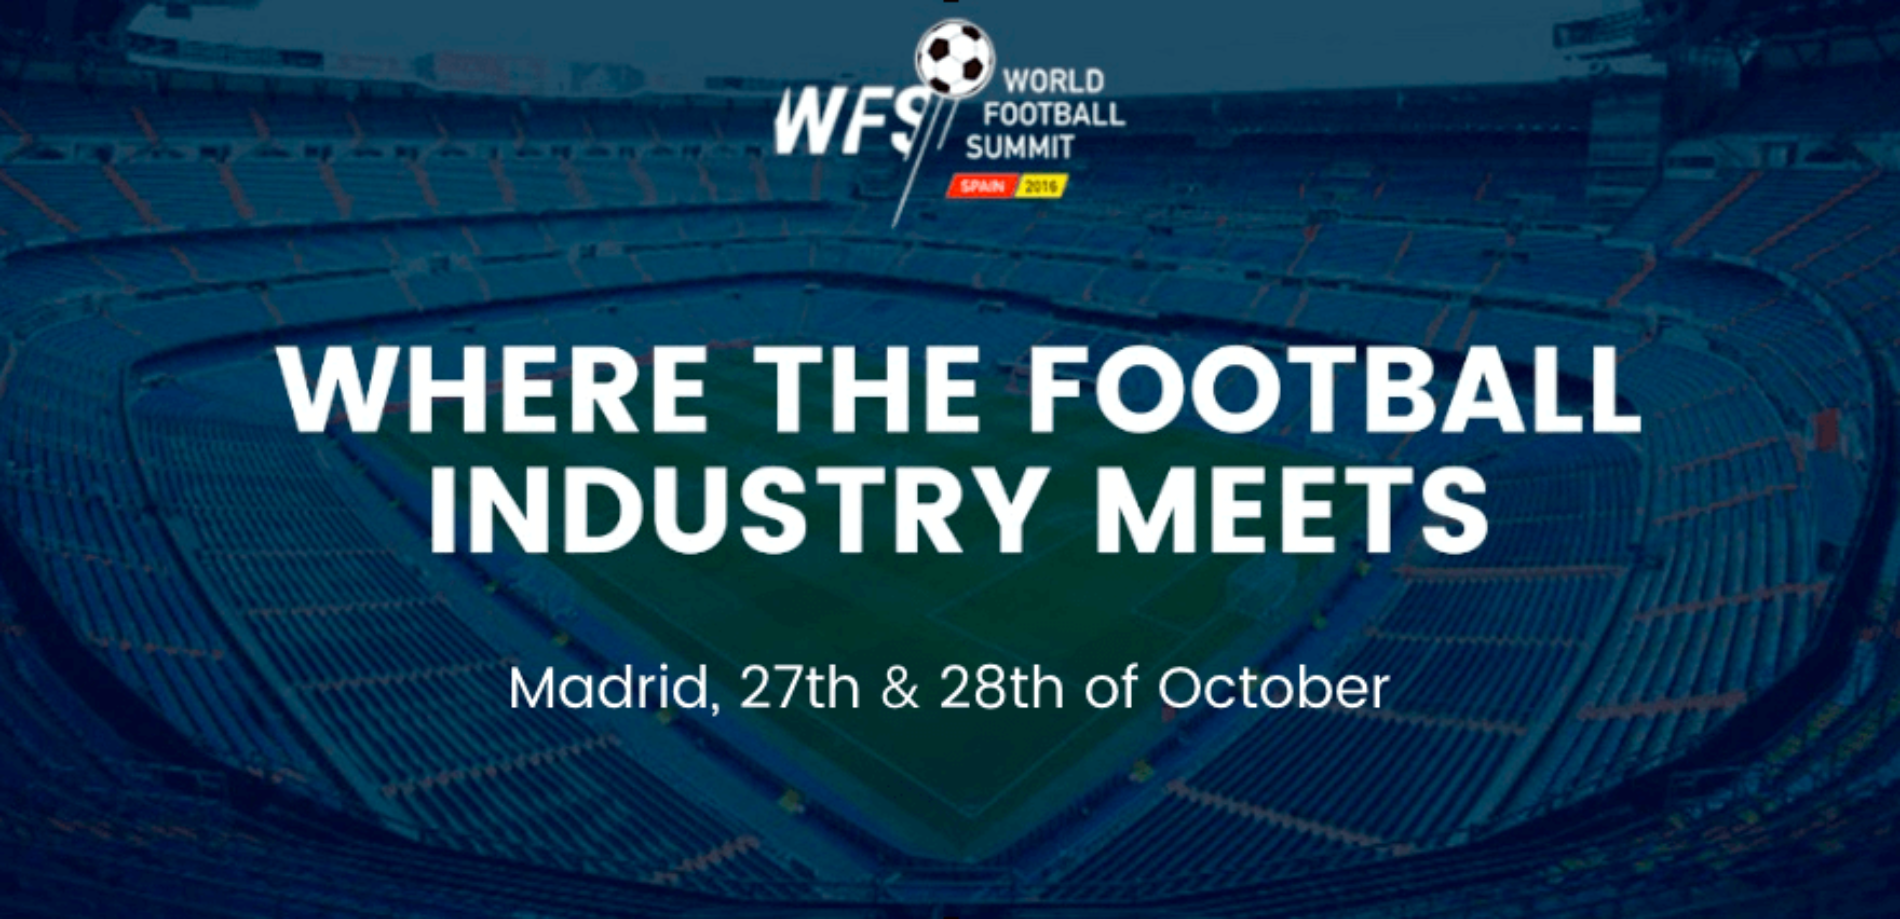 The football industry will meet at the World Football Summit